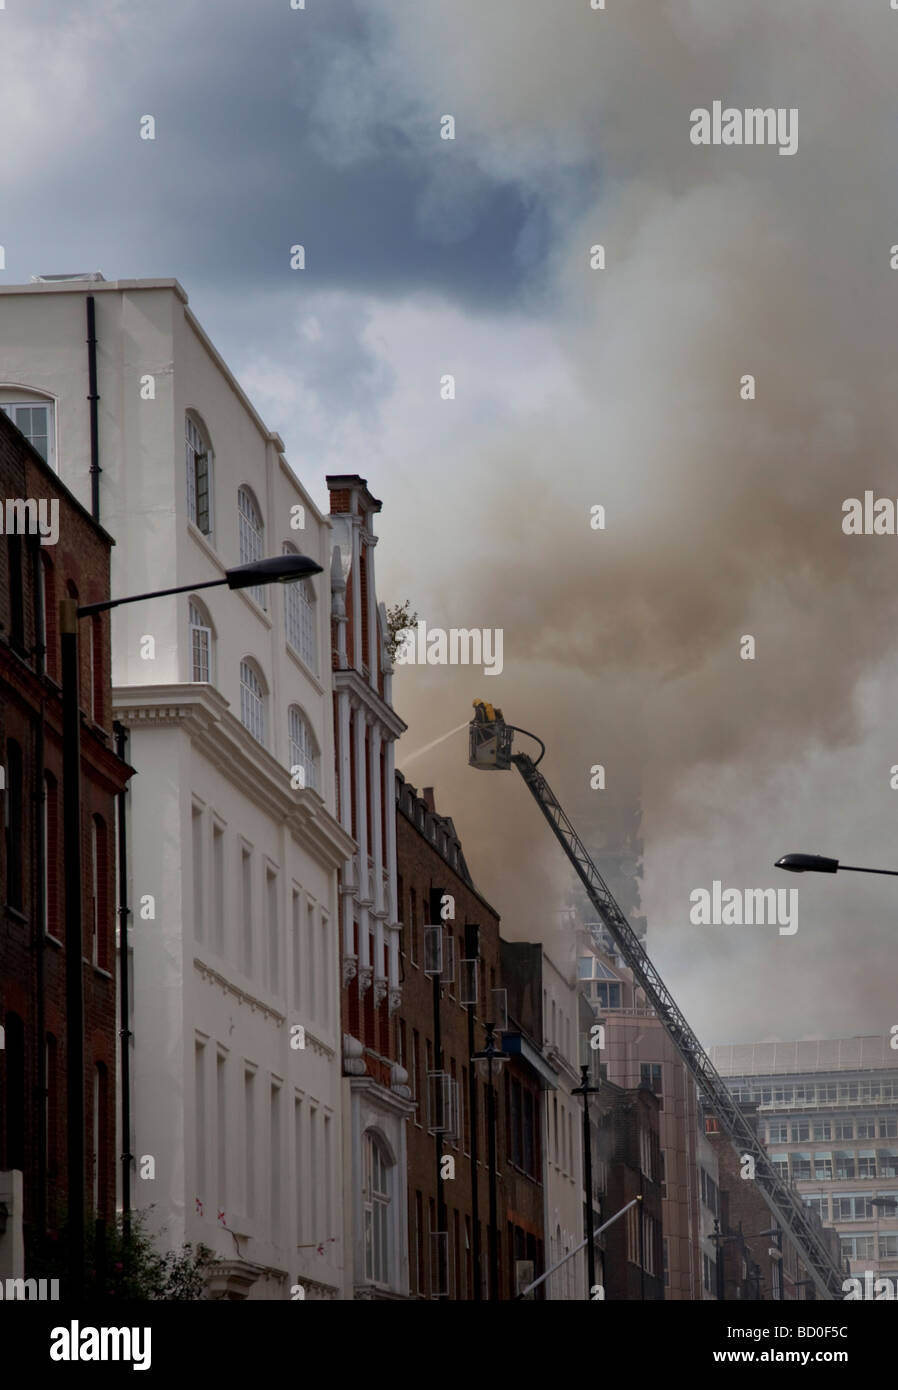 Firefighters battle a blaze in the heart of Soho, London after a fire in Dean Street destroyed a building. - Stock Image